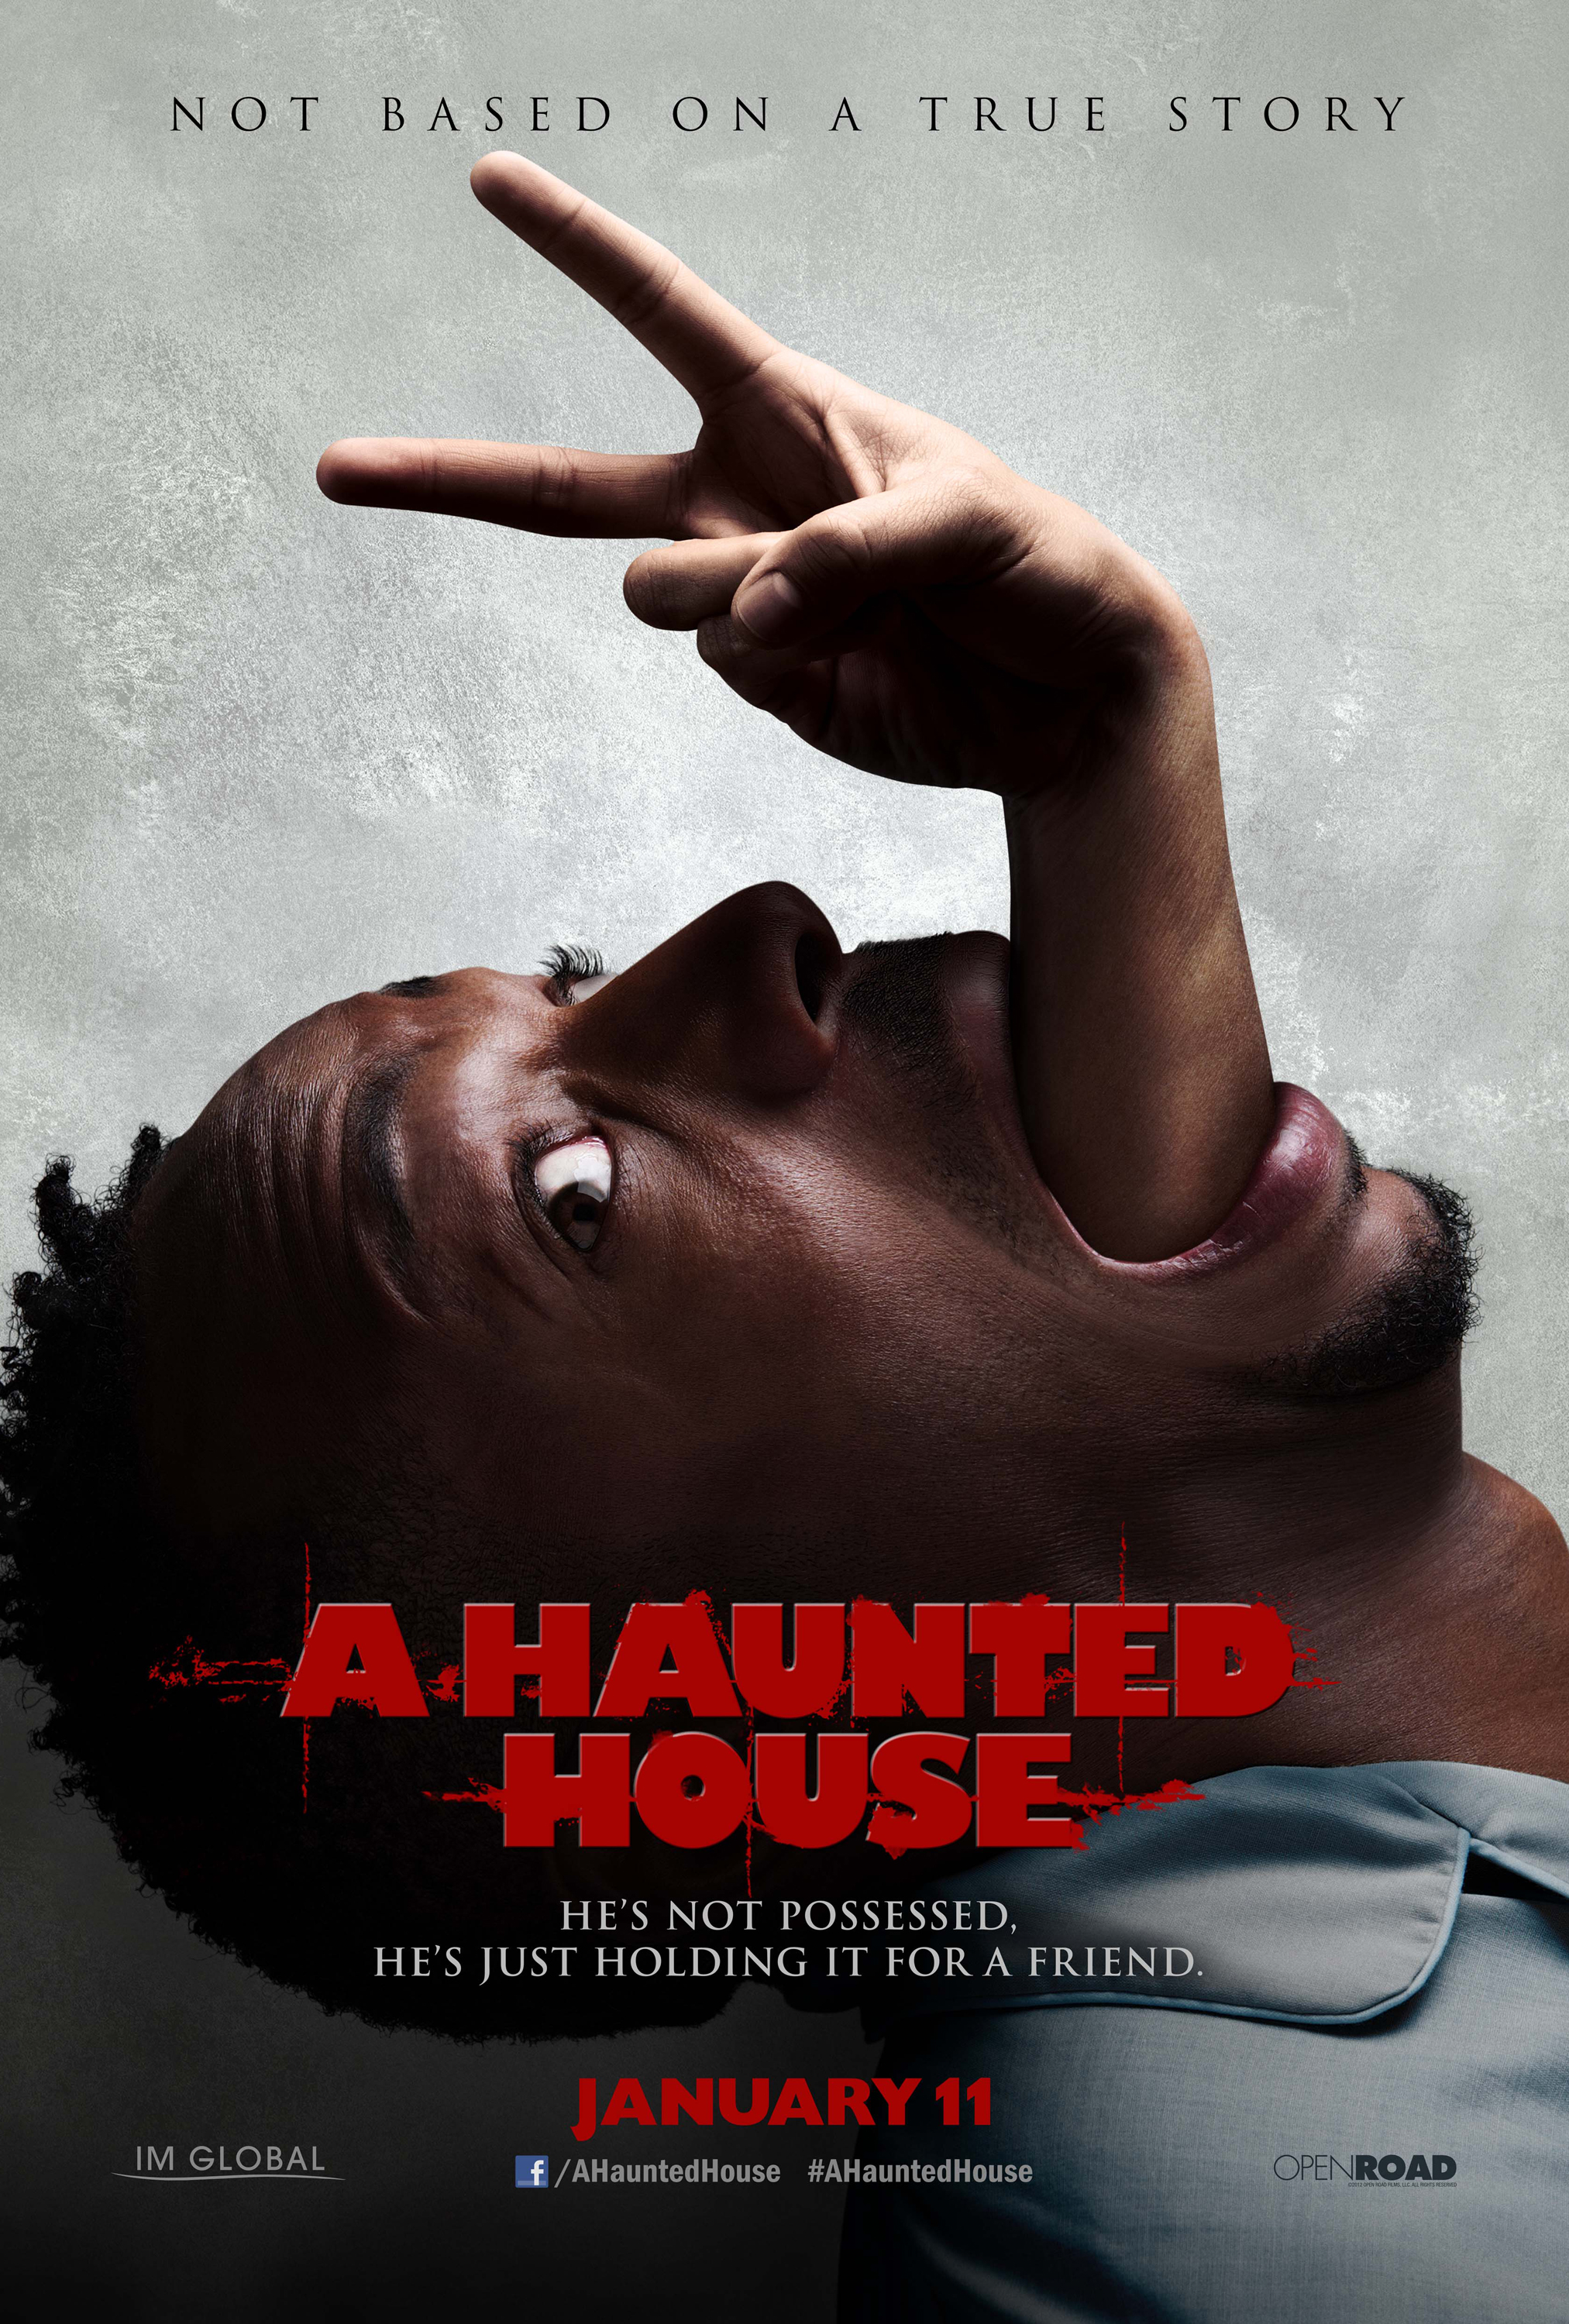 5 Questions With Marlon Wayans From 'A Haunted House